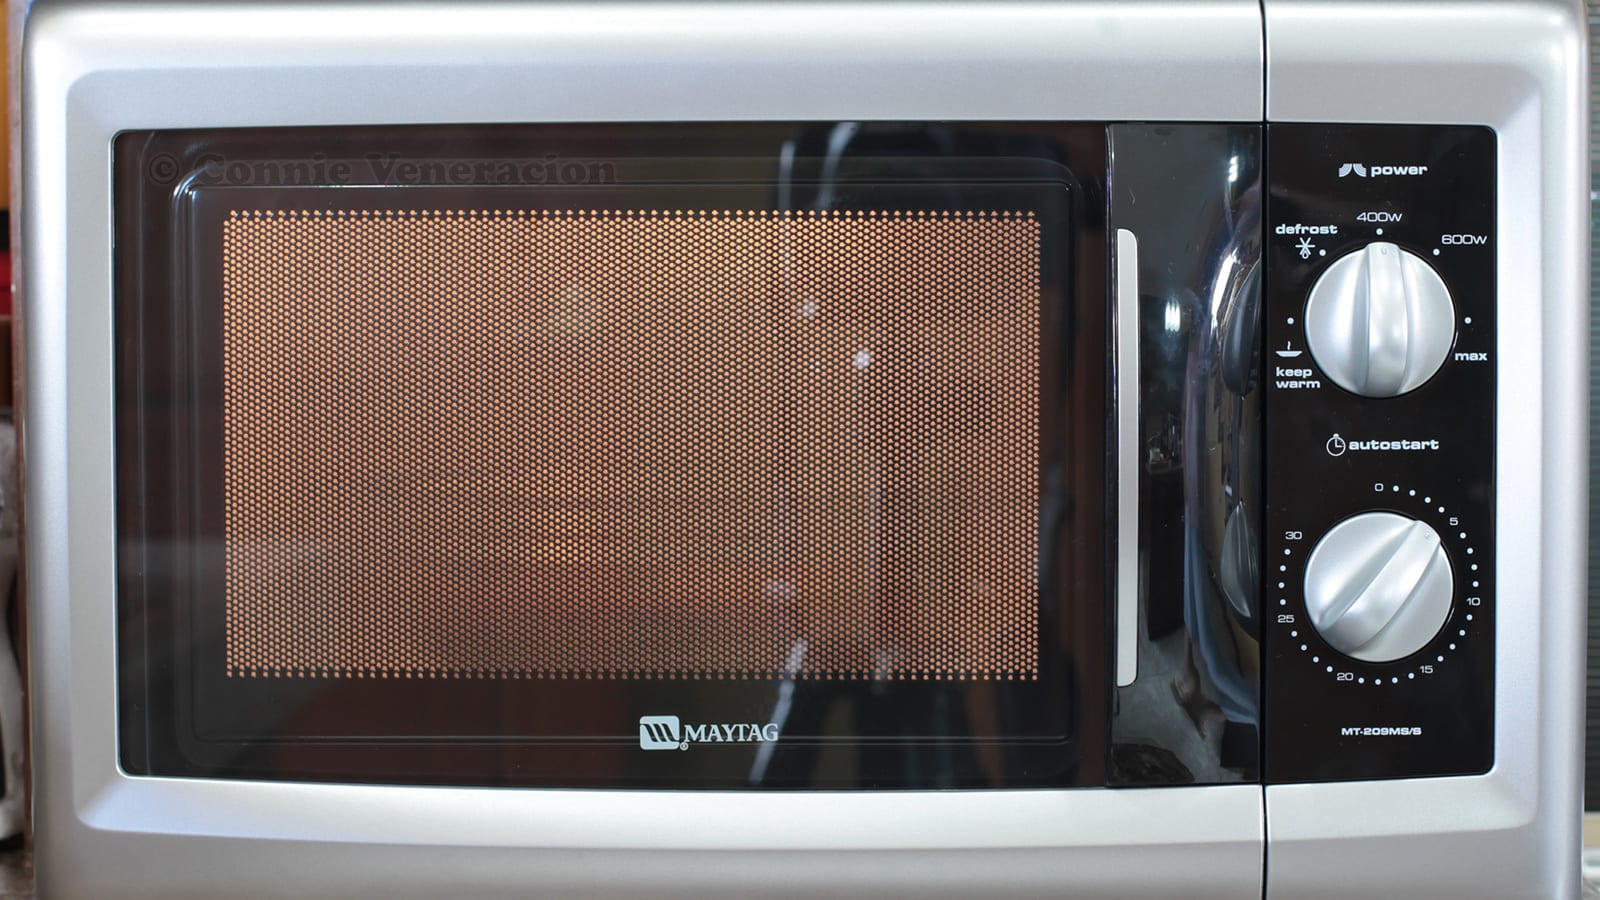 Does microwave cooking result in the healthiest meals? | casaveneracion.com